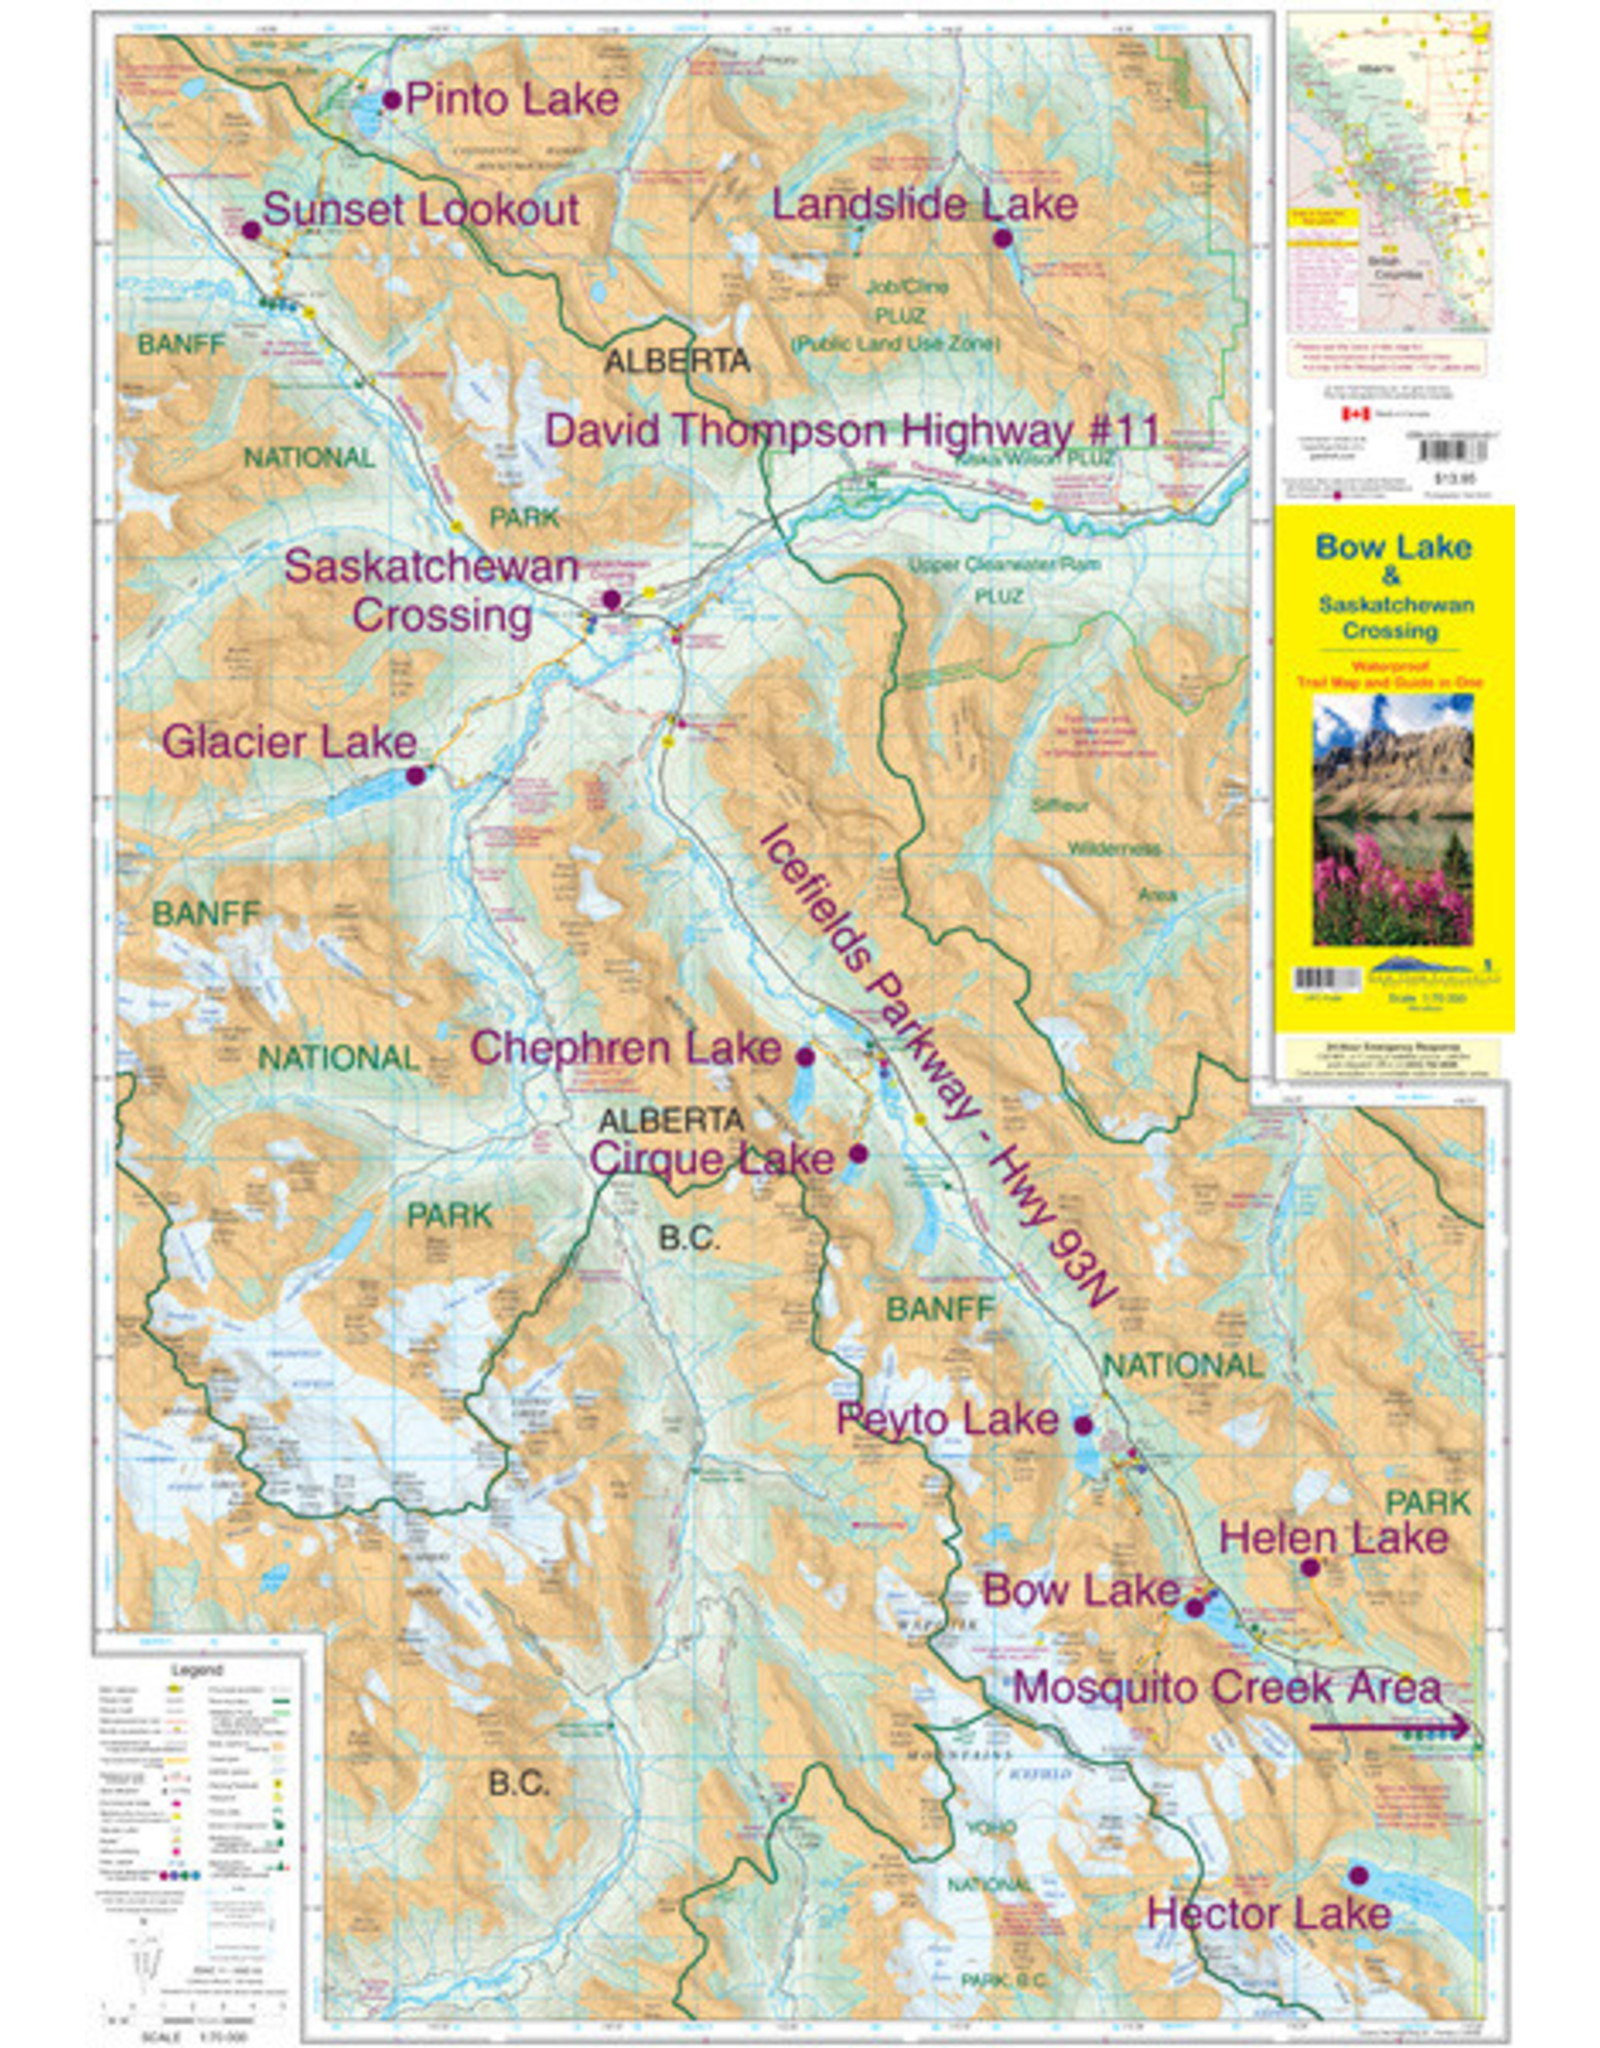 Gemtrek map Bow Lake &  Saskatchewan Crossing